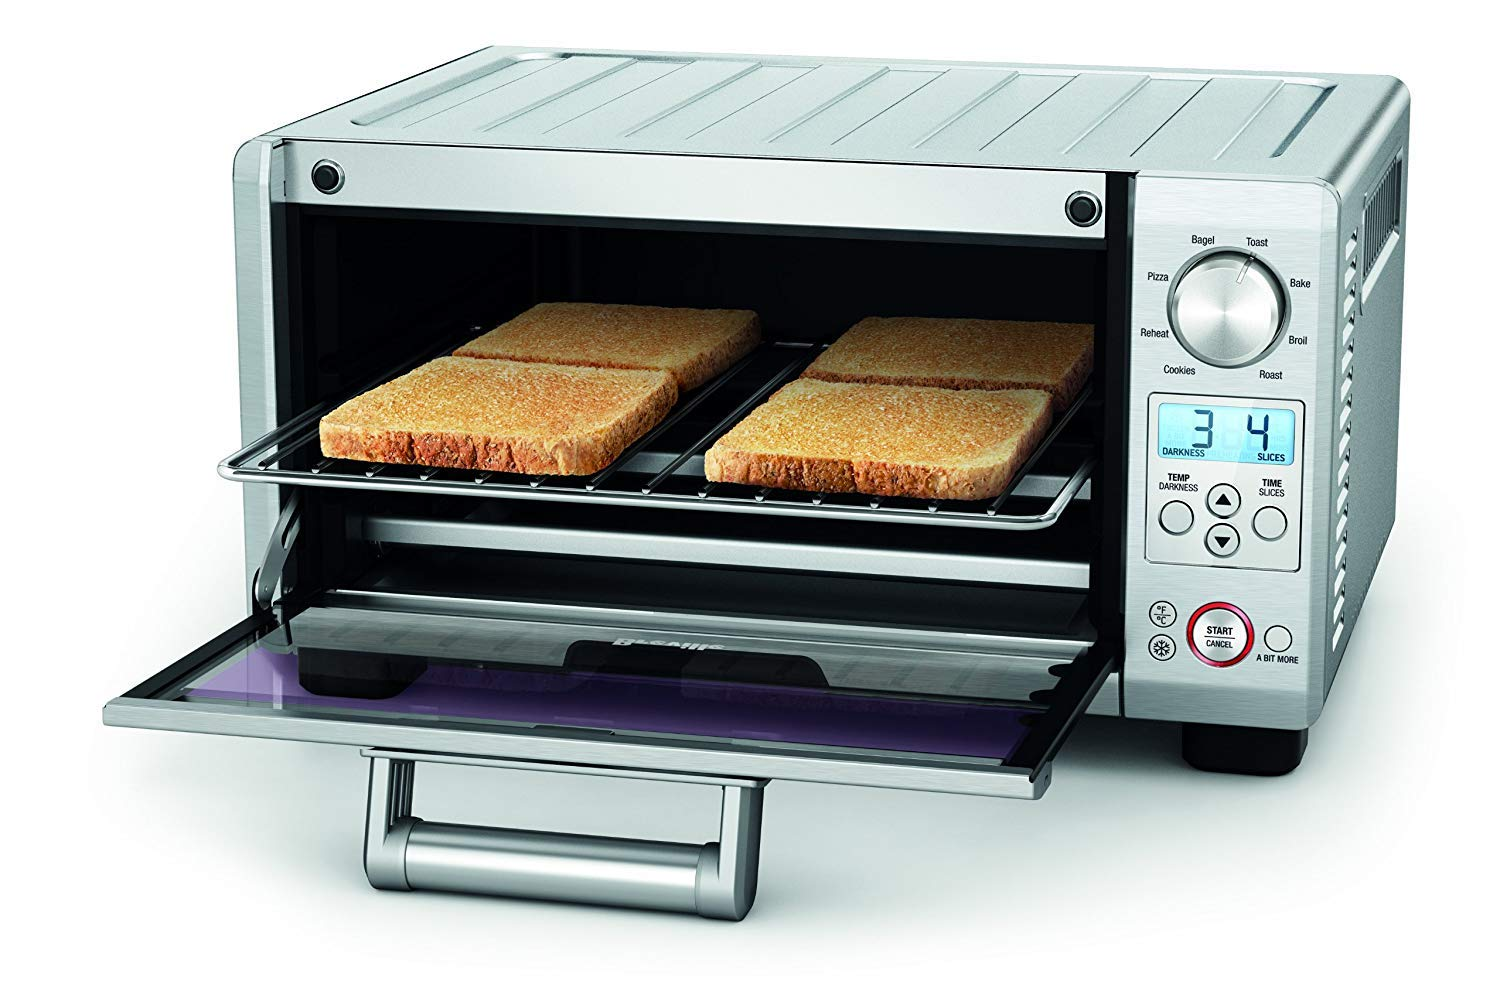 Breville the Mini Smart Oven 1800-Watt Compact Toaster Oven - BOV450XL by Breville (Image #2)